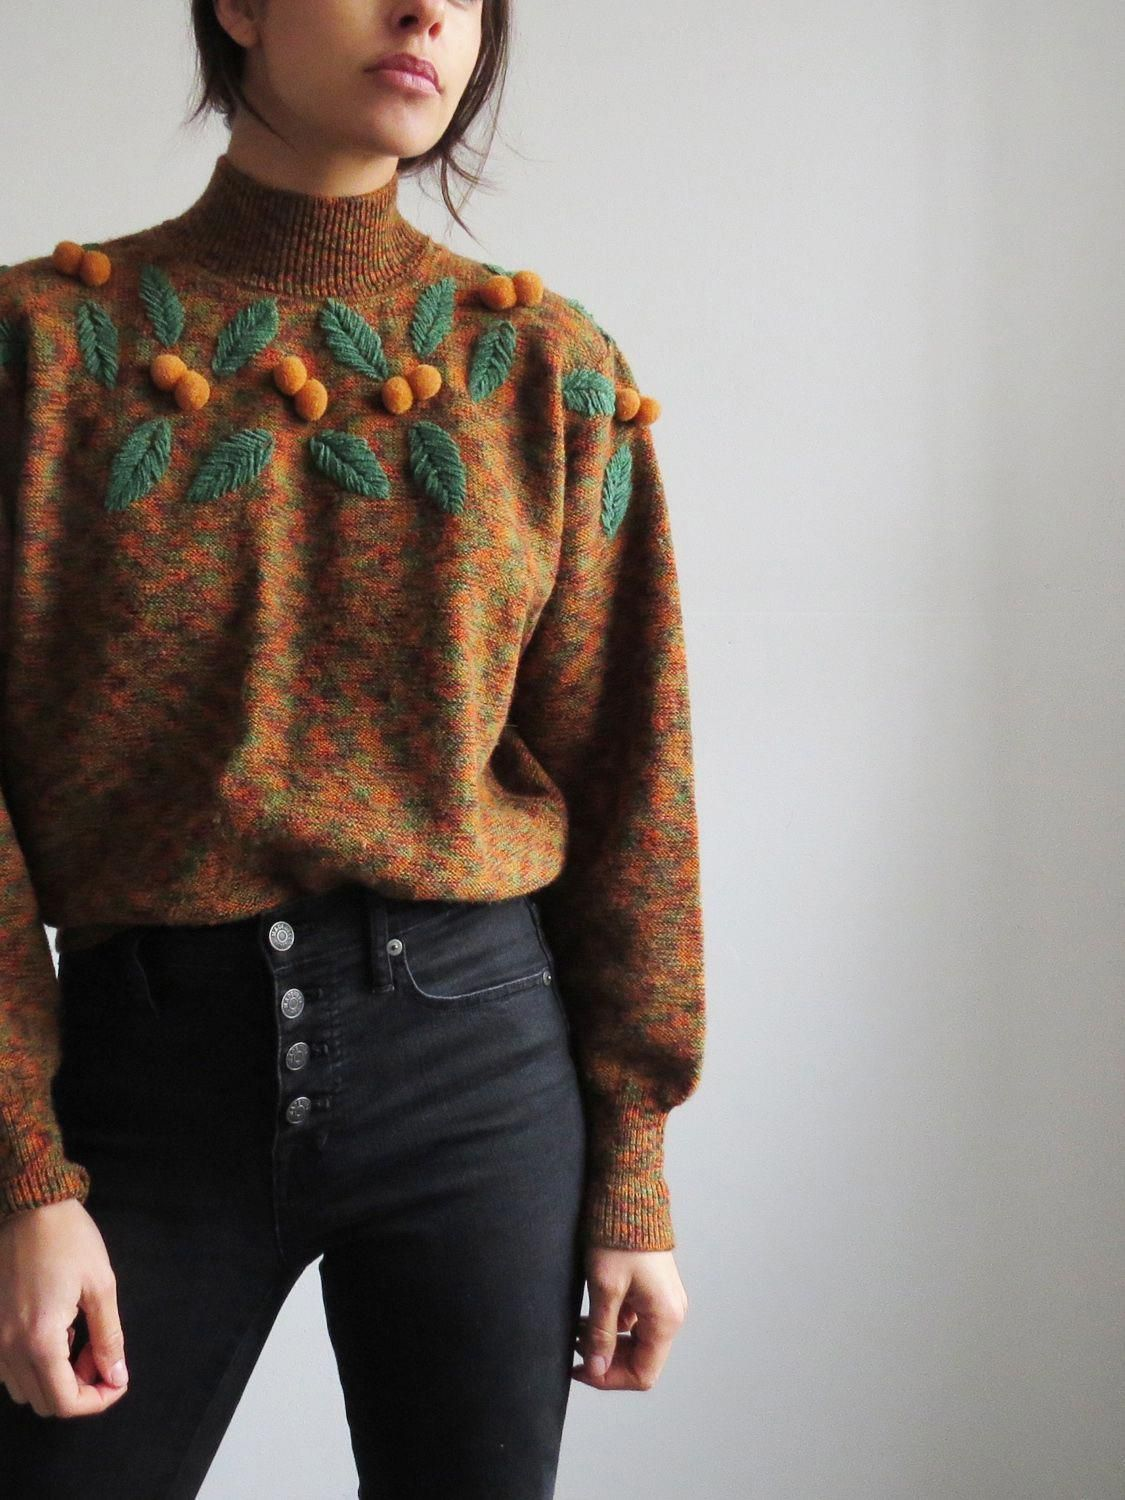 Vintage 1970's Mock Neck Sweater SOLD over30swomensfashion is part of Fashion -